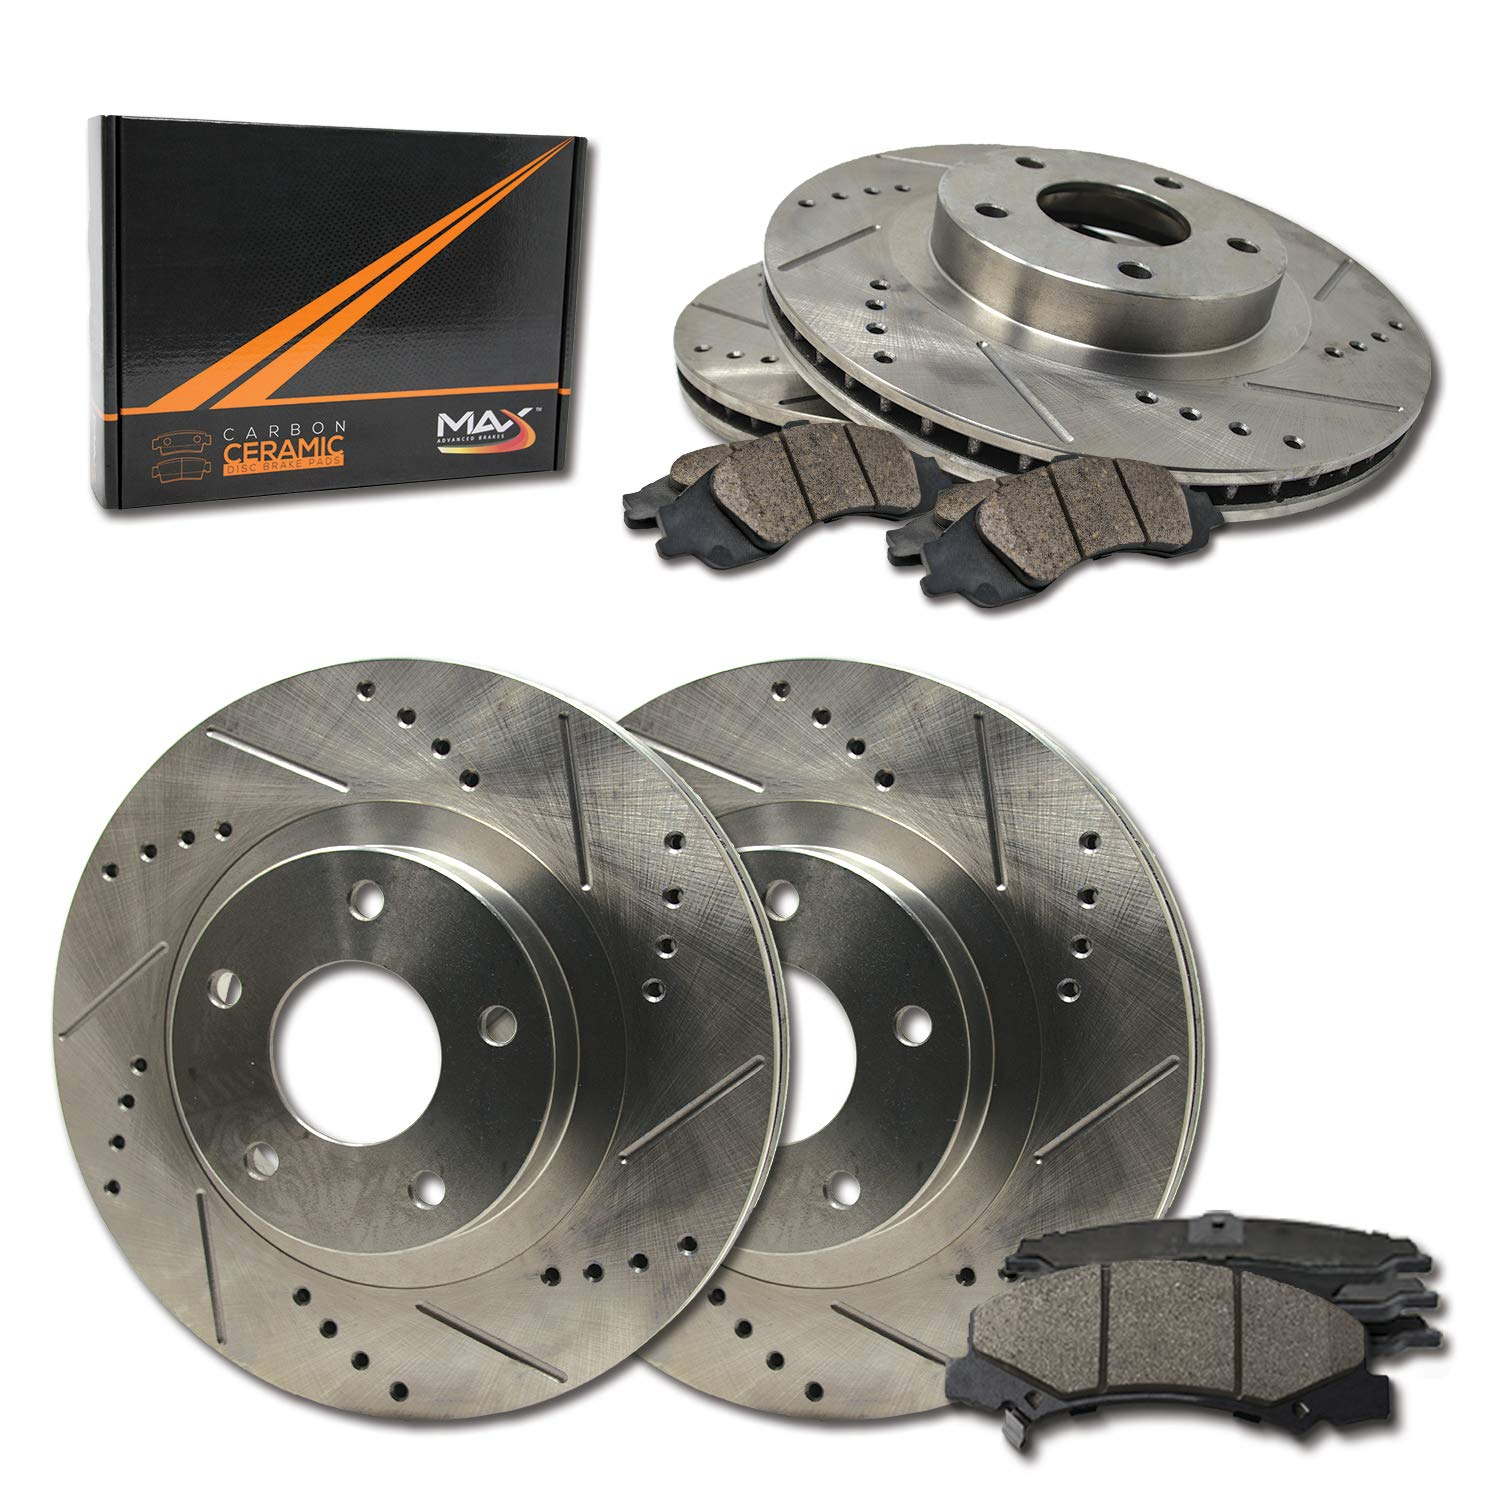 Max Brakes Front & Rear Performance Brake Kit [ Premium Slotted Drilled Rotors + Ceramic Pads ] KT062133 Fits: 2006-2012 Ford Fusion | 2007-2012 Lincoln MKZ | 2006-2011 Mercury Milan